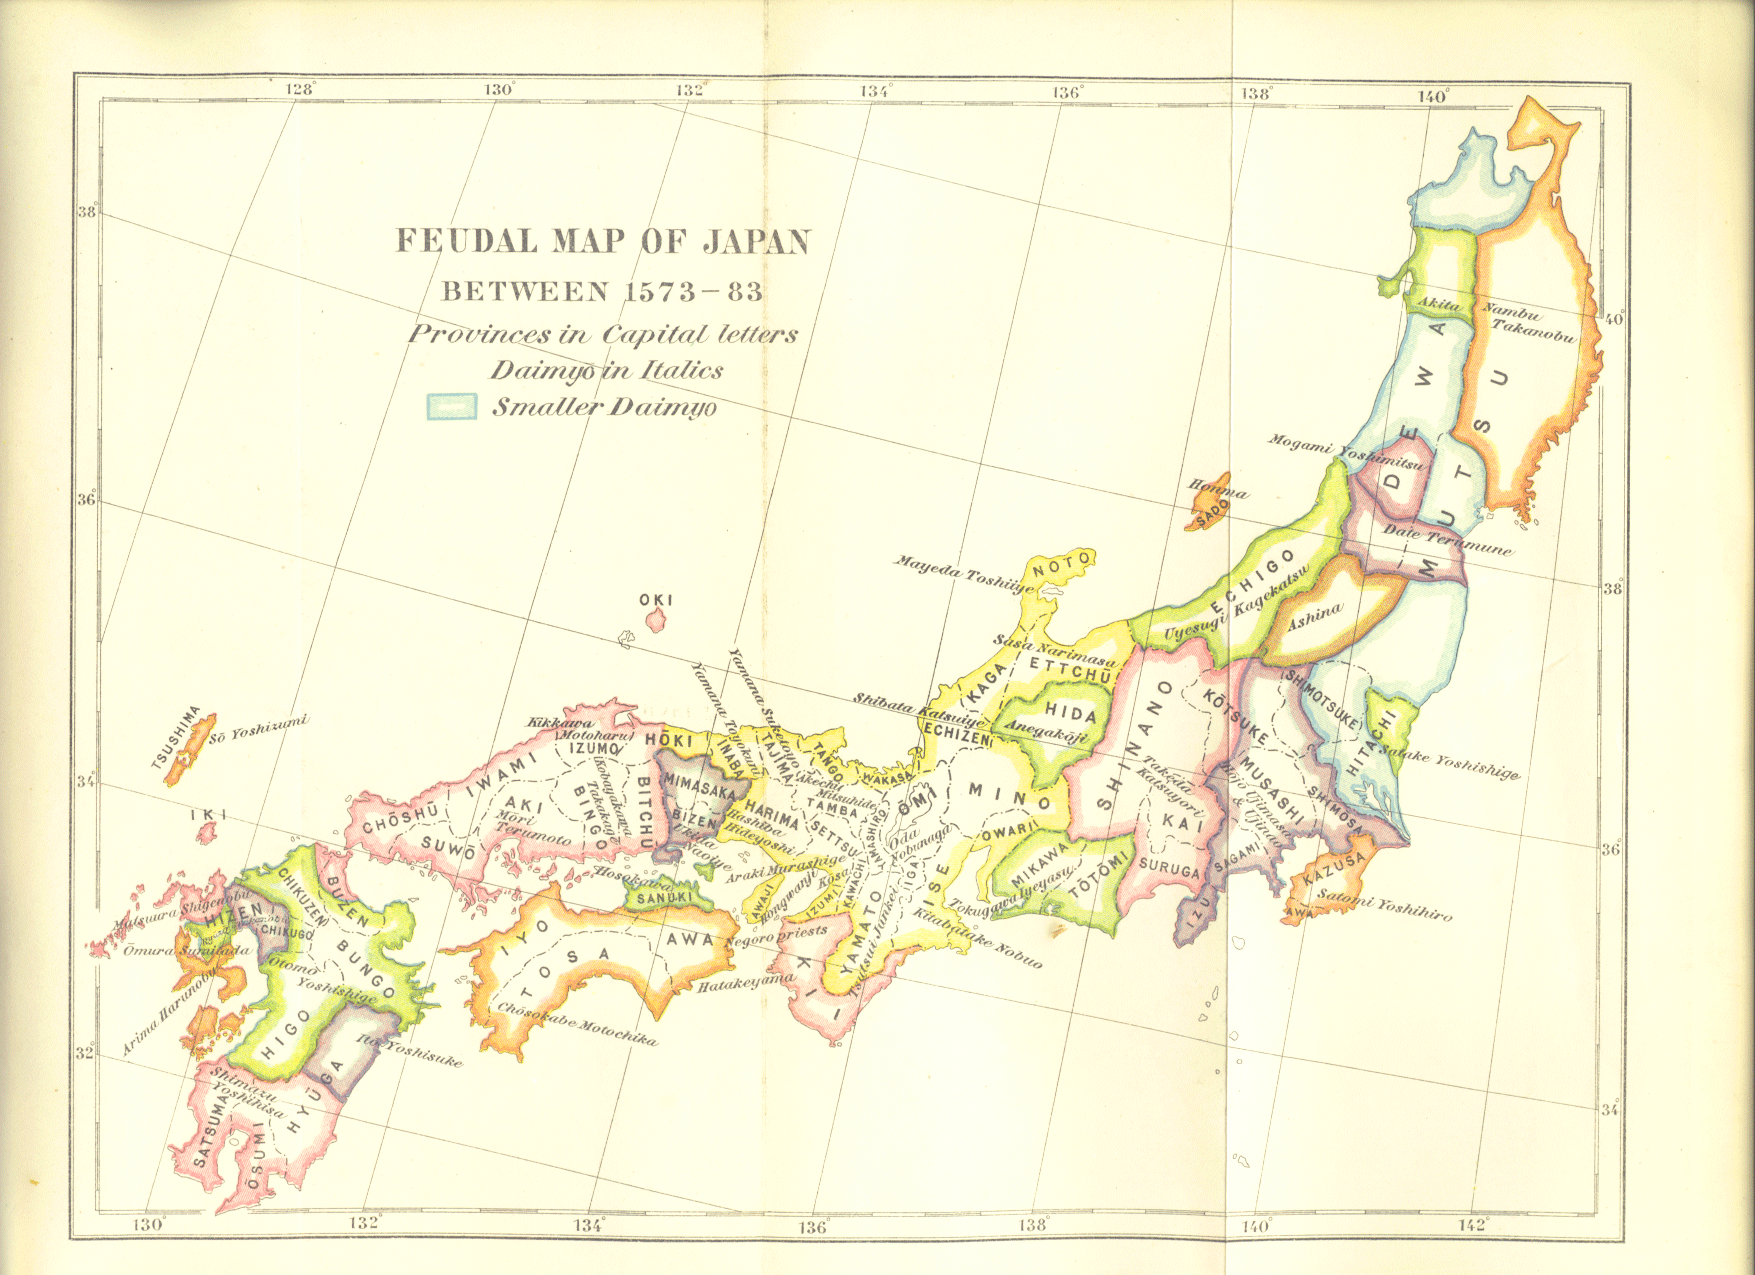 Japan Emaze Project Groover On Emaze - Map of feudal japan 1600